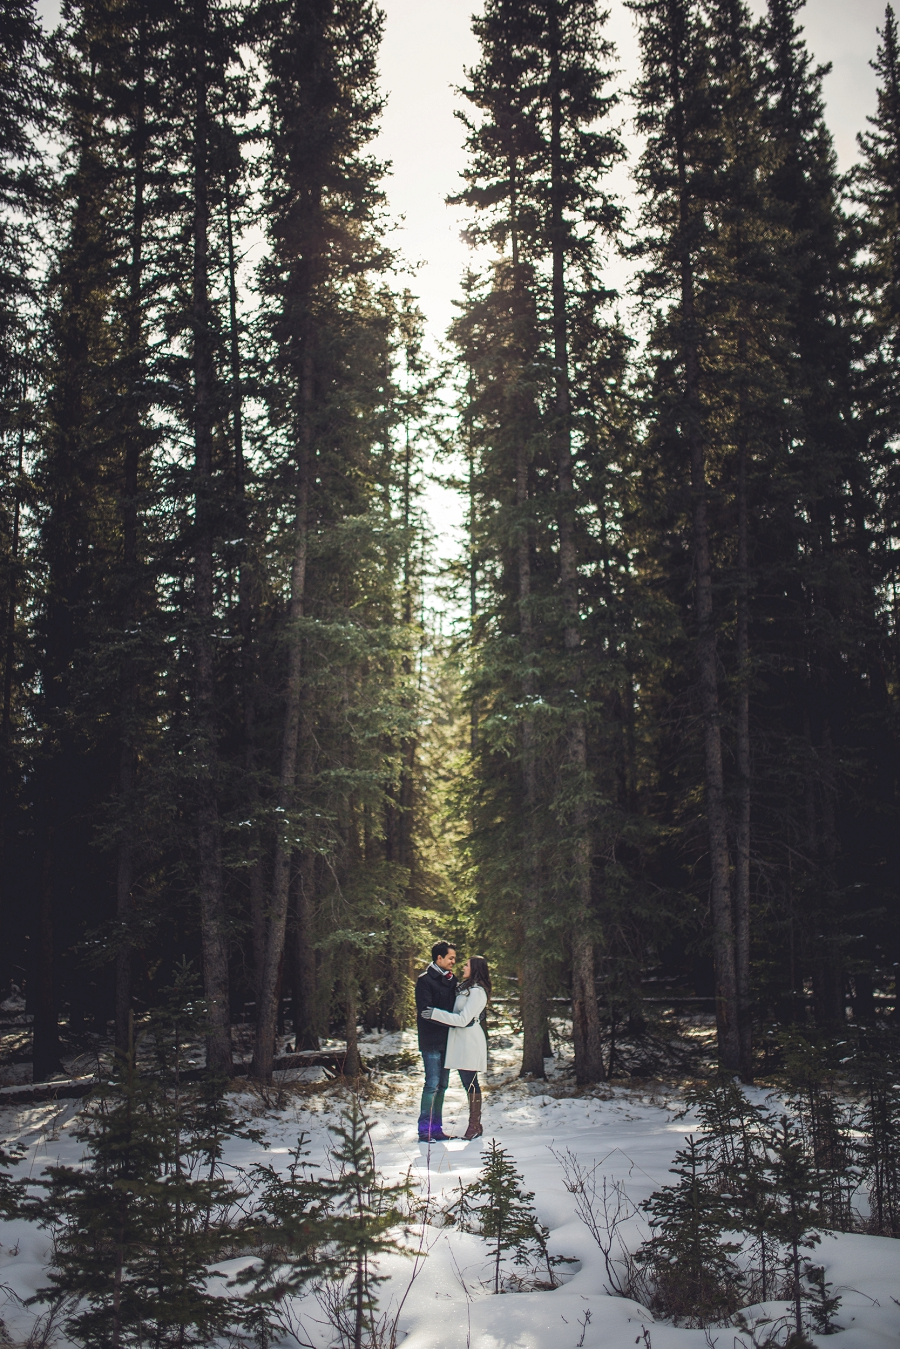 winter banff forest engagement photos wedding calgary